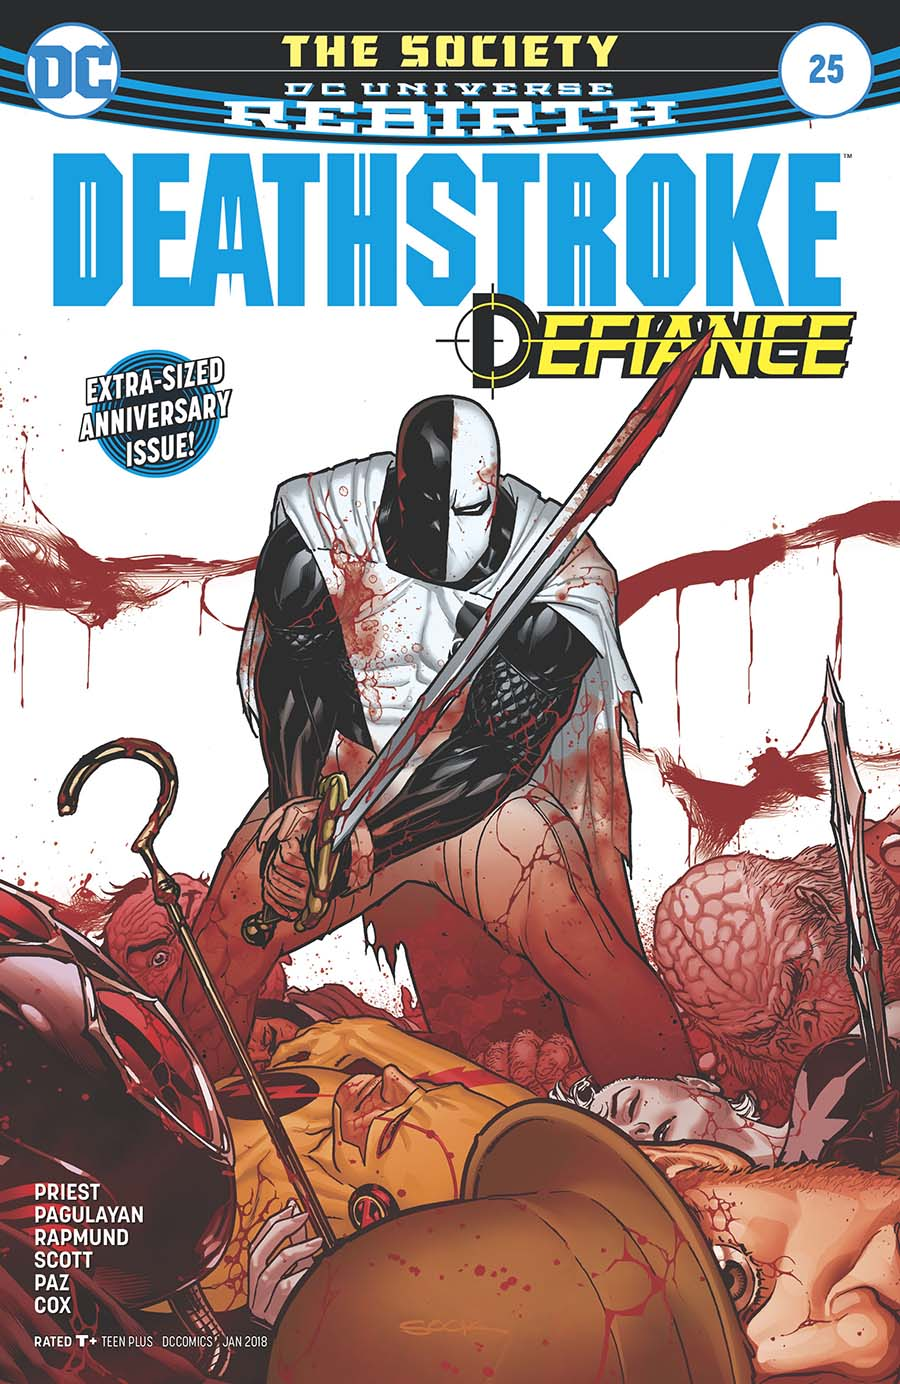 Deathstroke Vol 4 #25 Cover A Regular Ryan Sook Cover